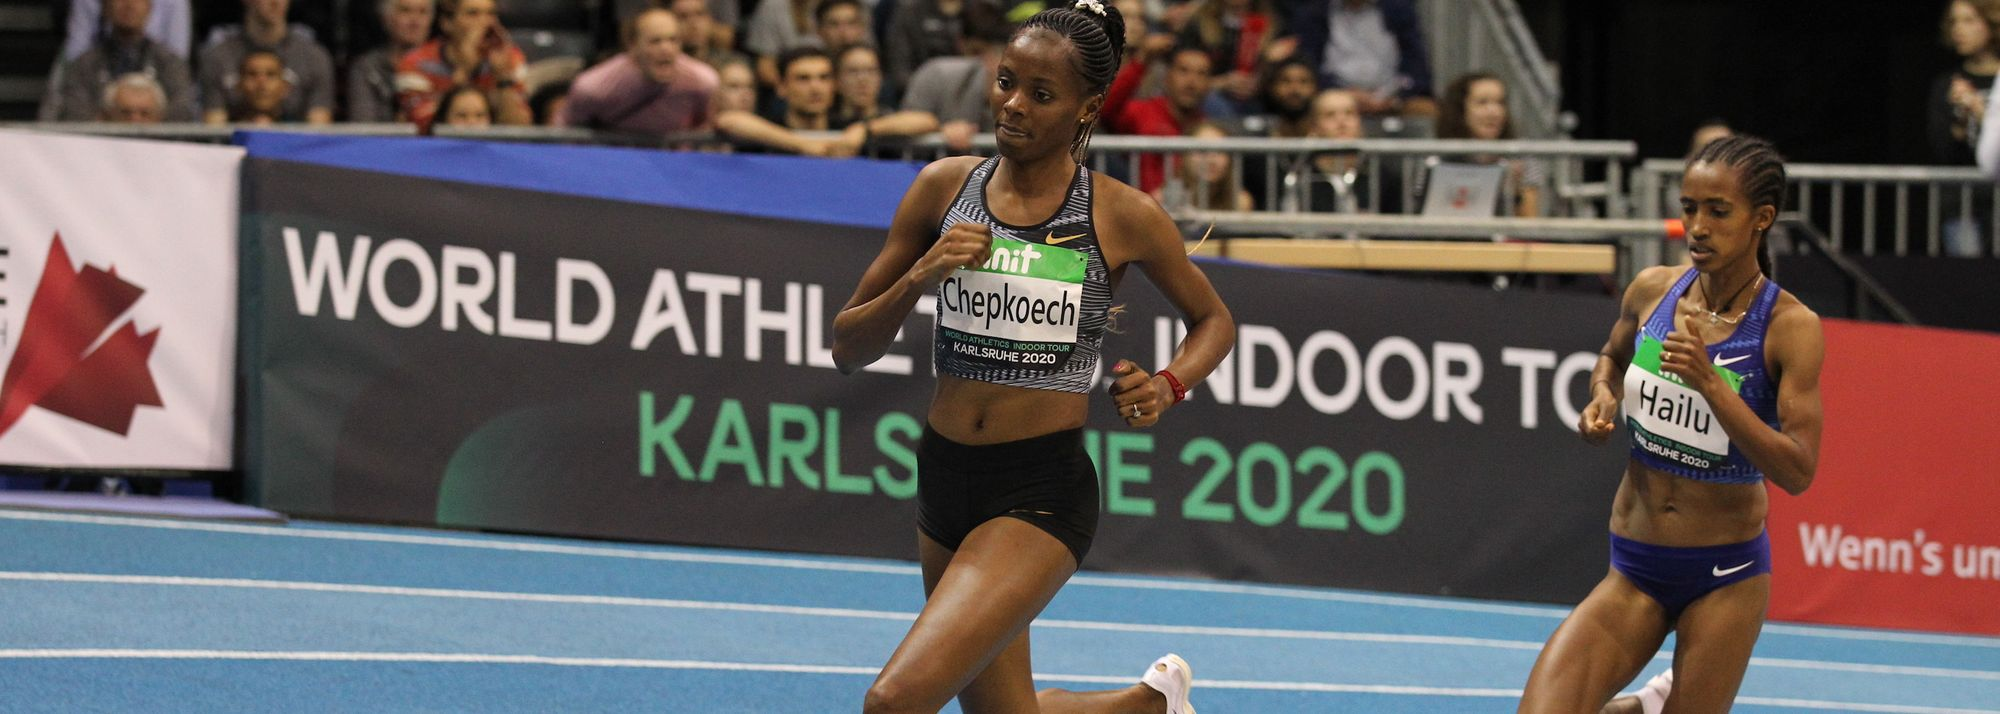 Sunday's inaugural American Track League event to set the stage for the Indoor Meeting Karlsruhe